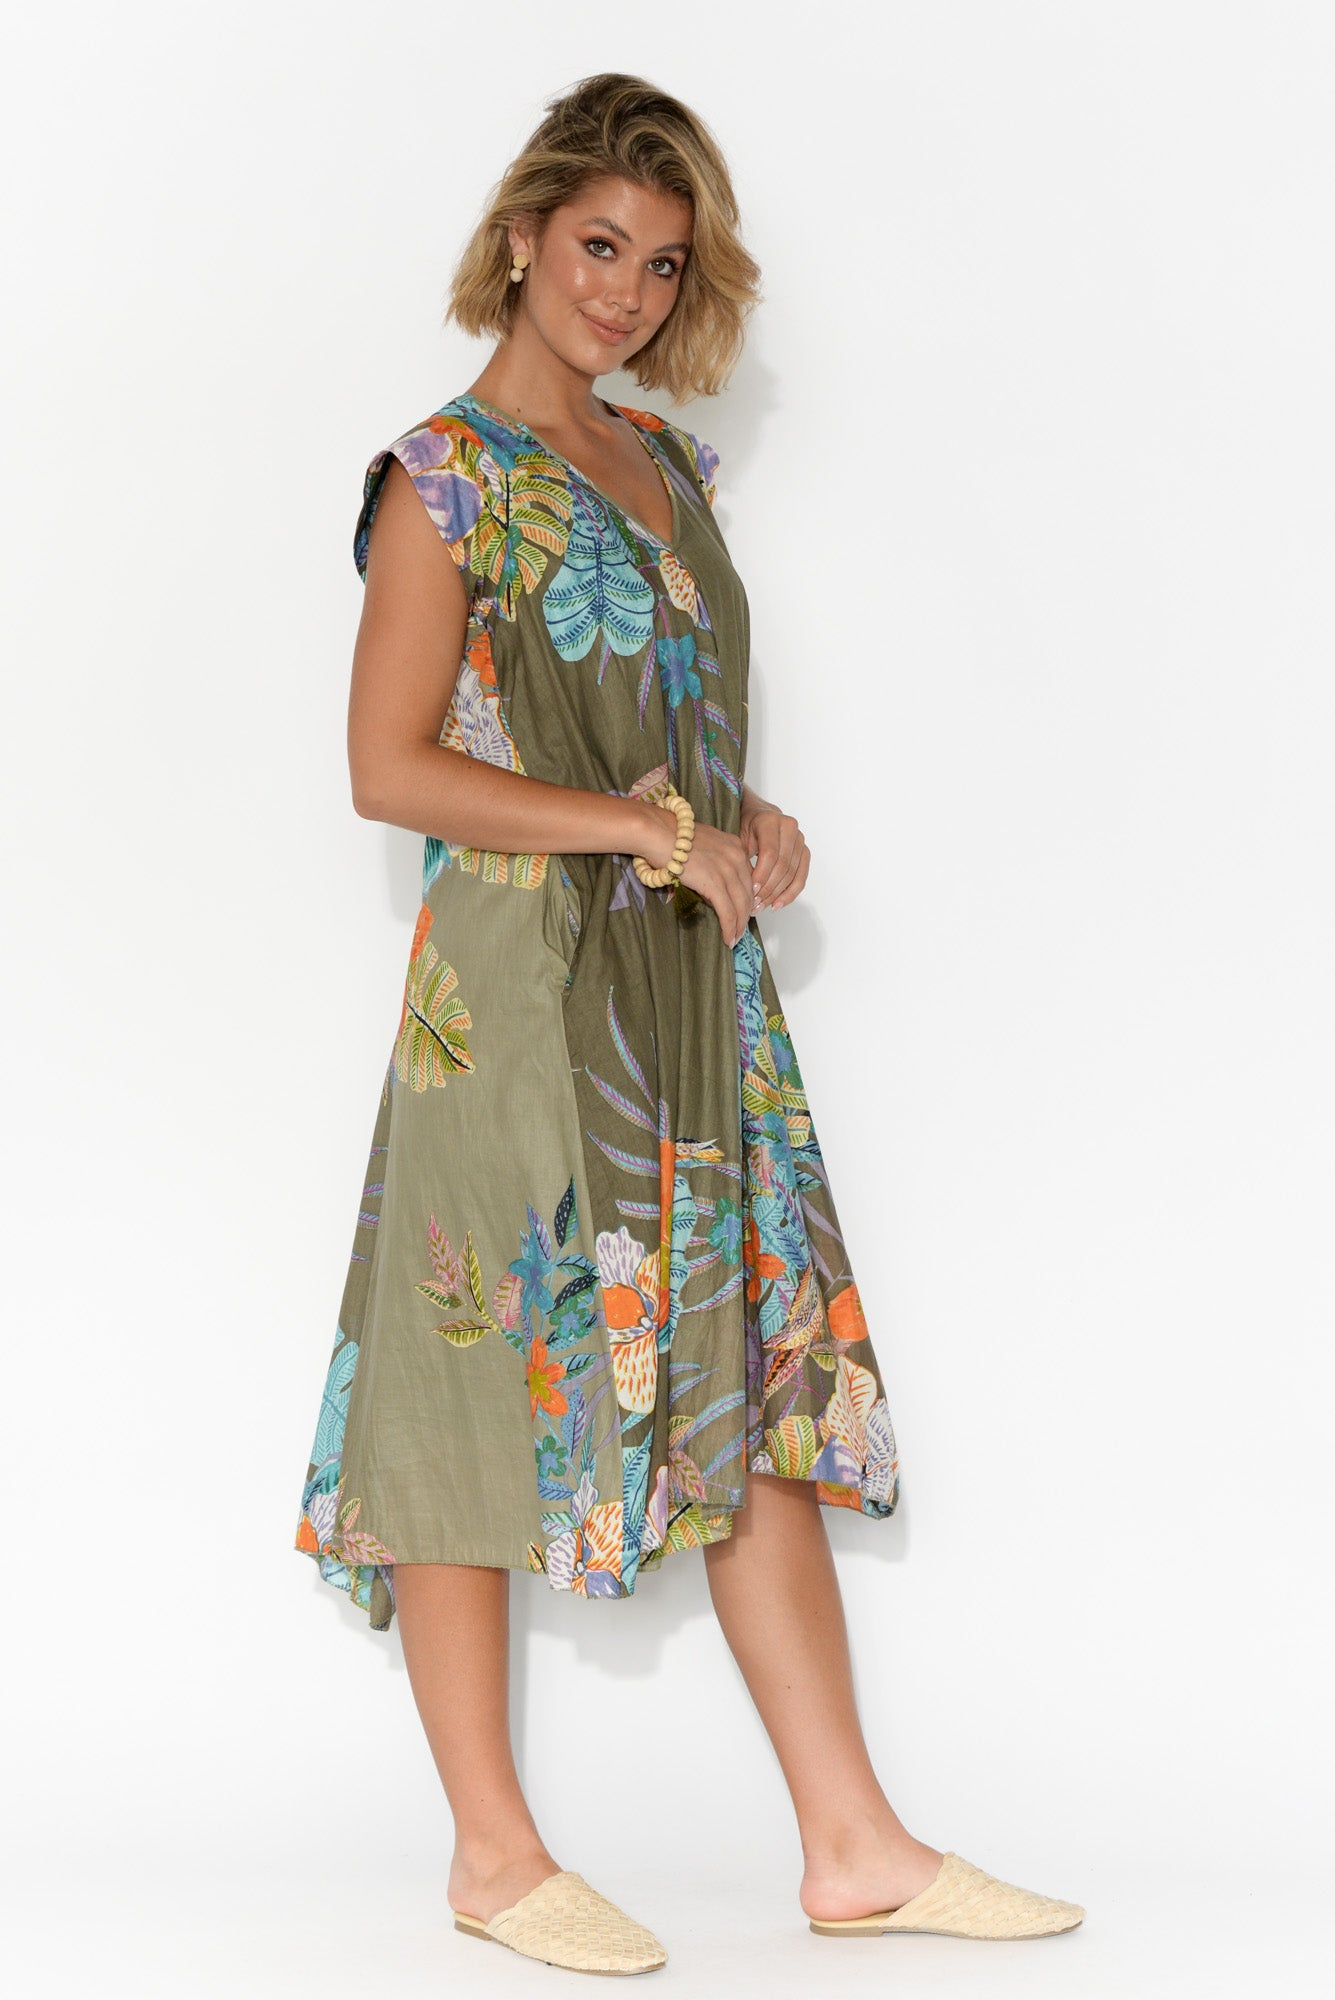 Maheno Khaki Floral Cotton Dress